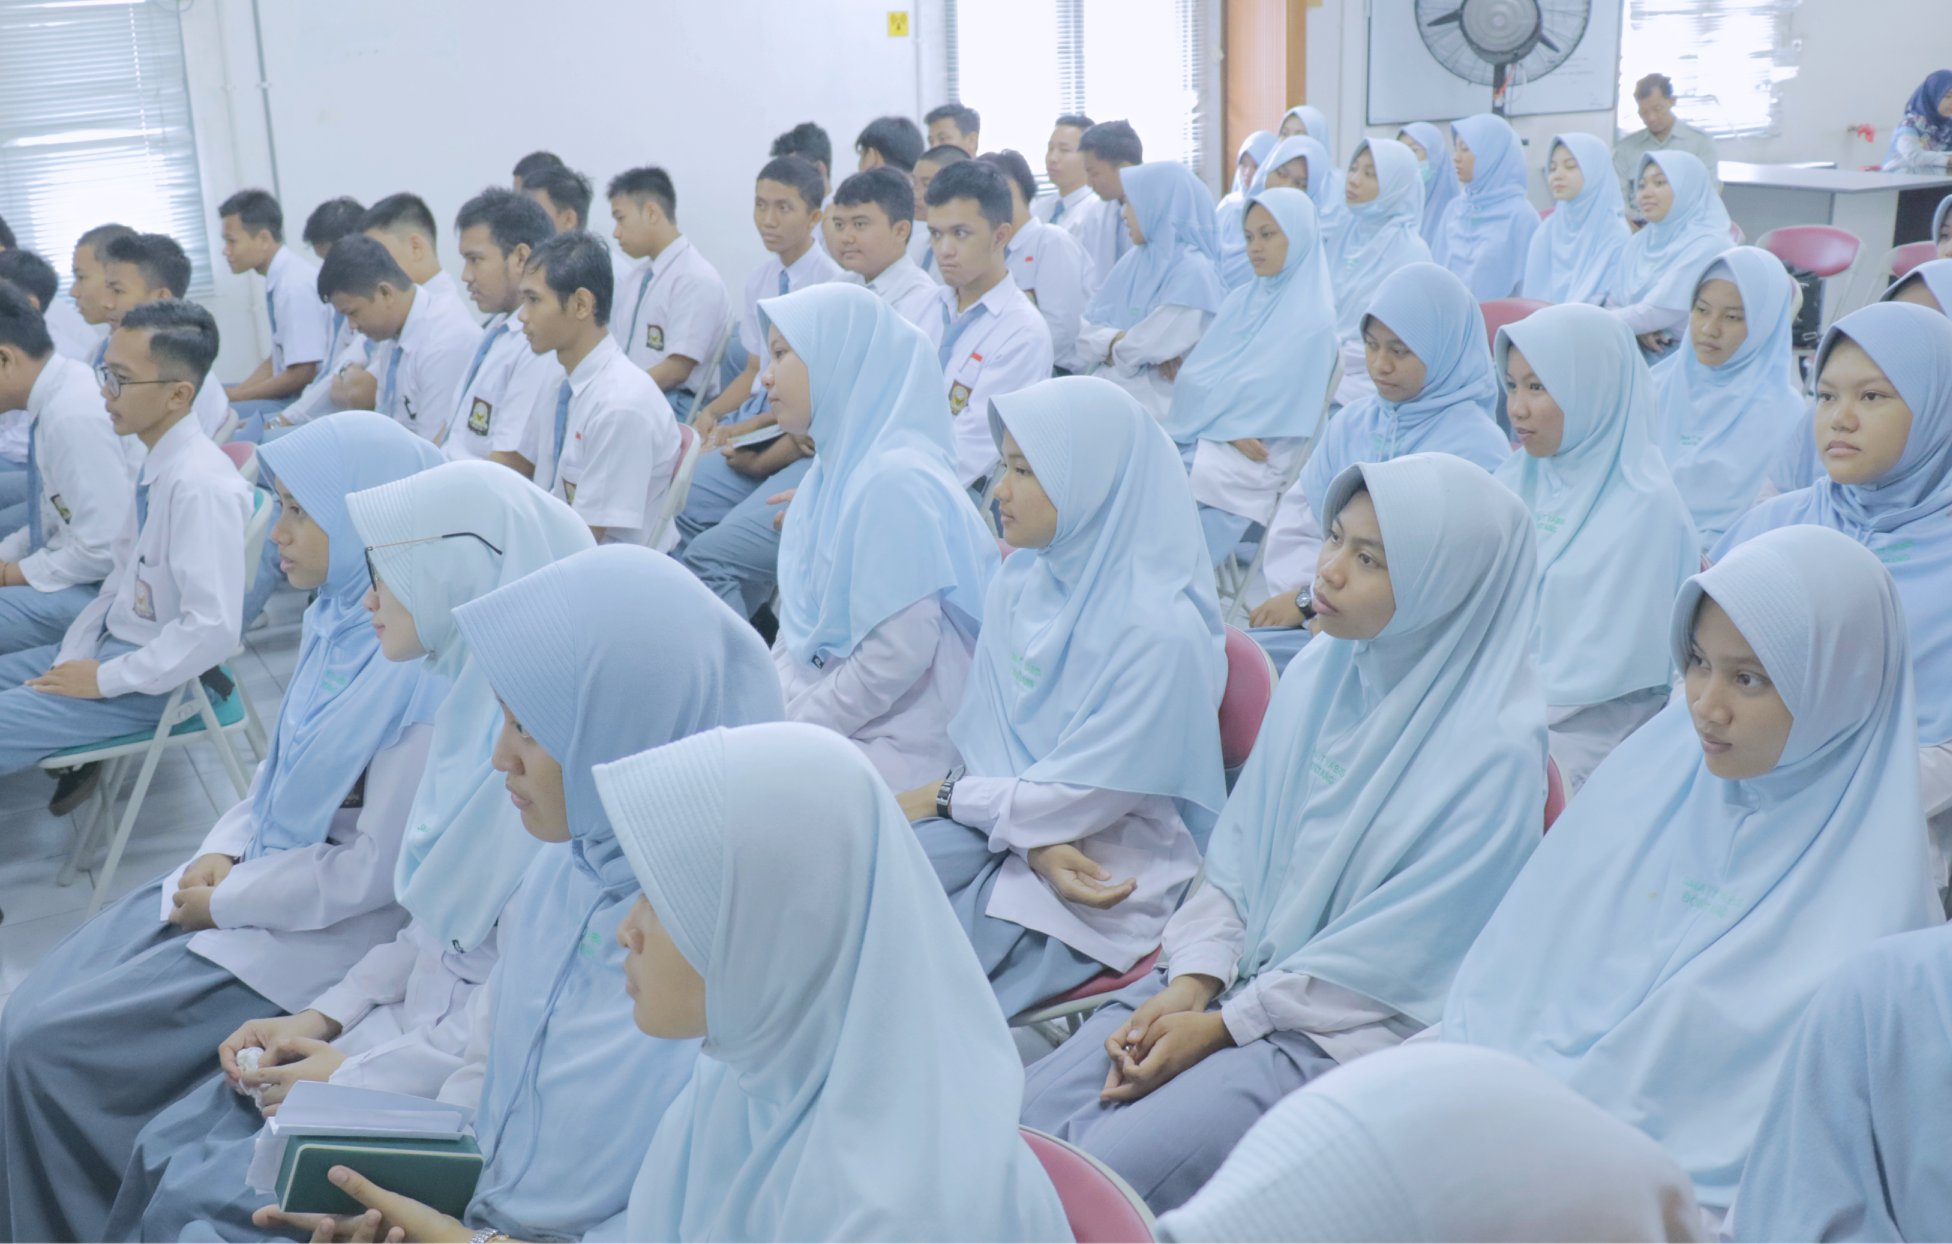 sma-it-yabis-students-plant-visit-2019-pt-kpi(1).jpg